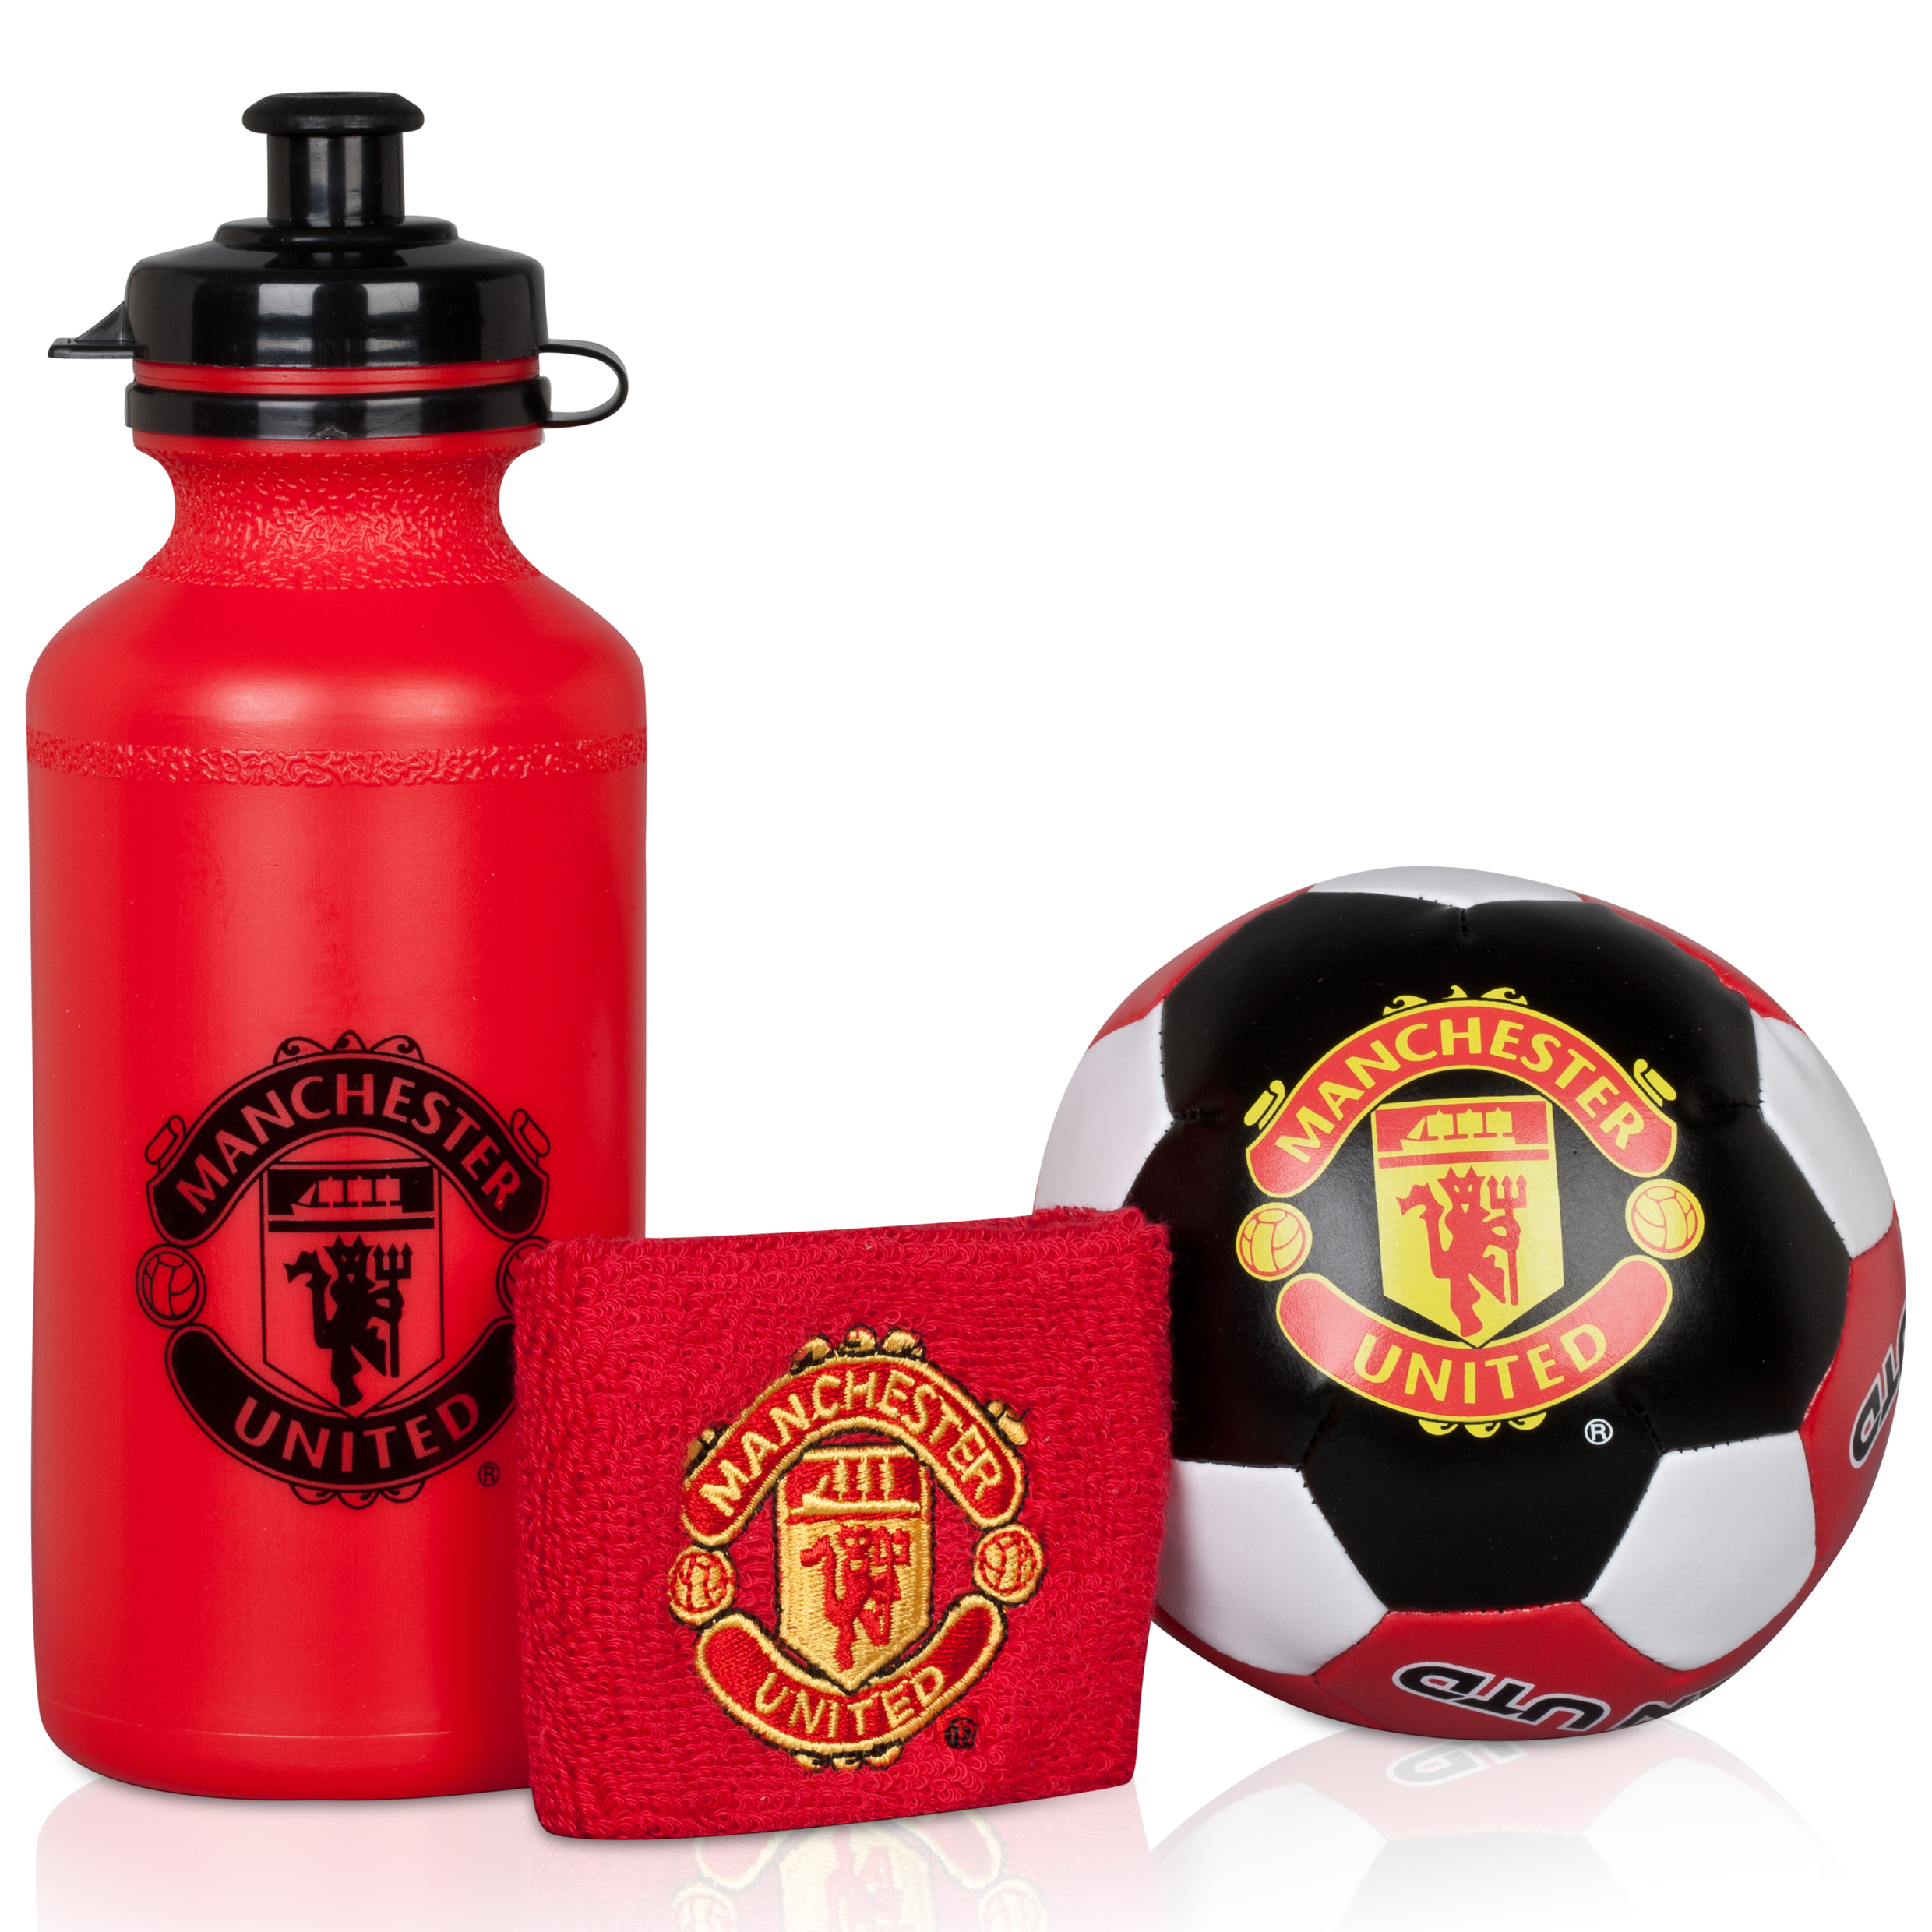 Manchester United Football Gift Set